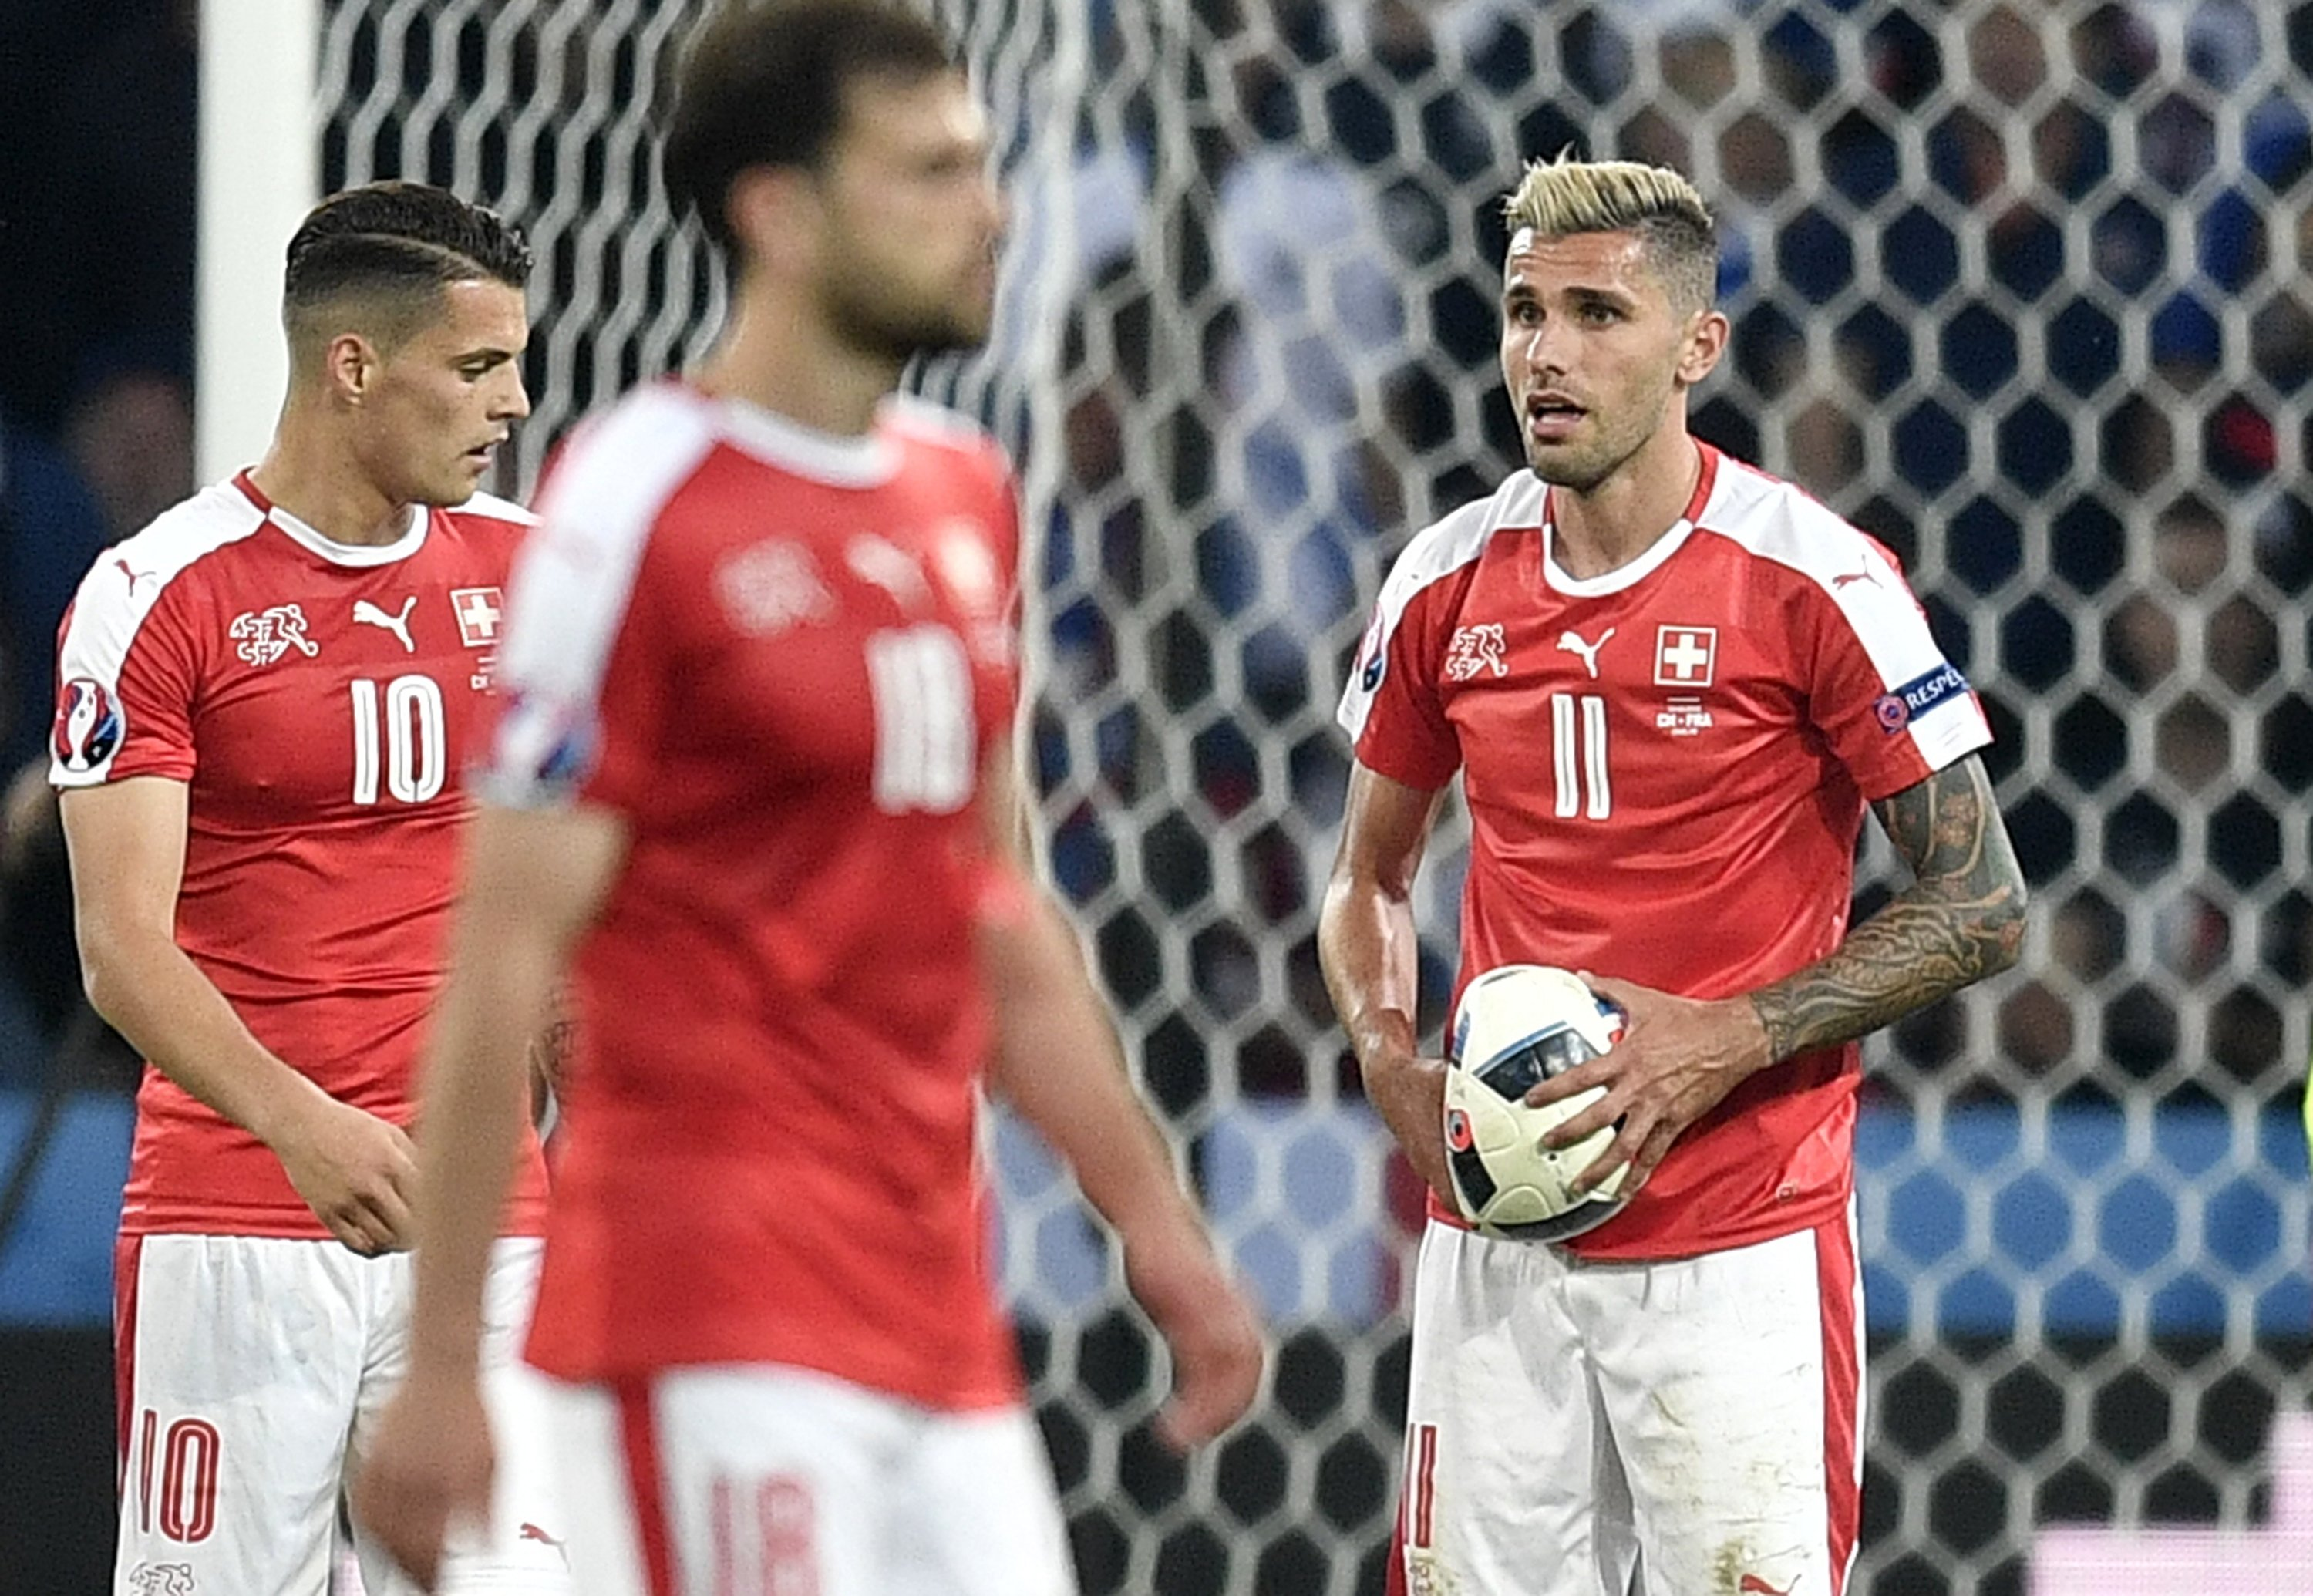 The Latest: Soccer ball splits open at Euro 2016